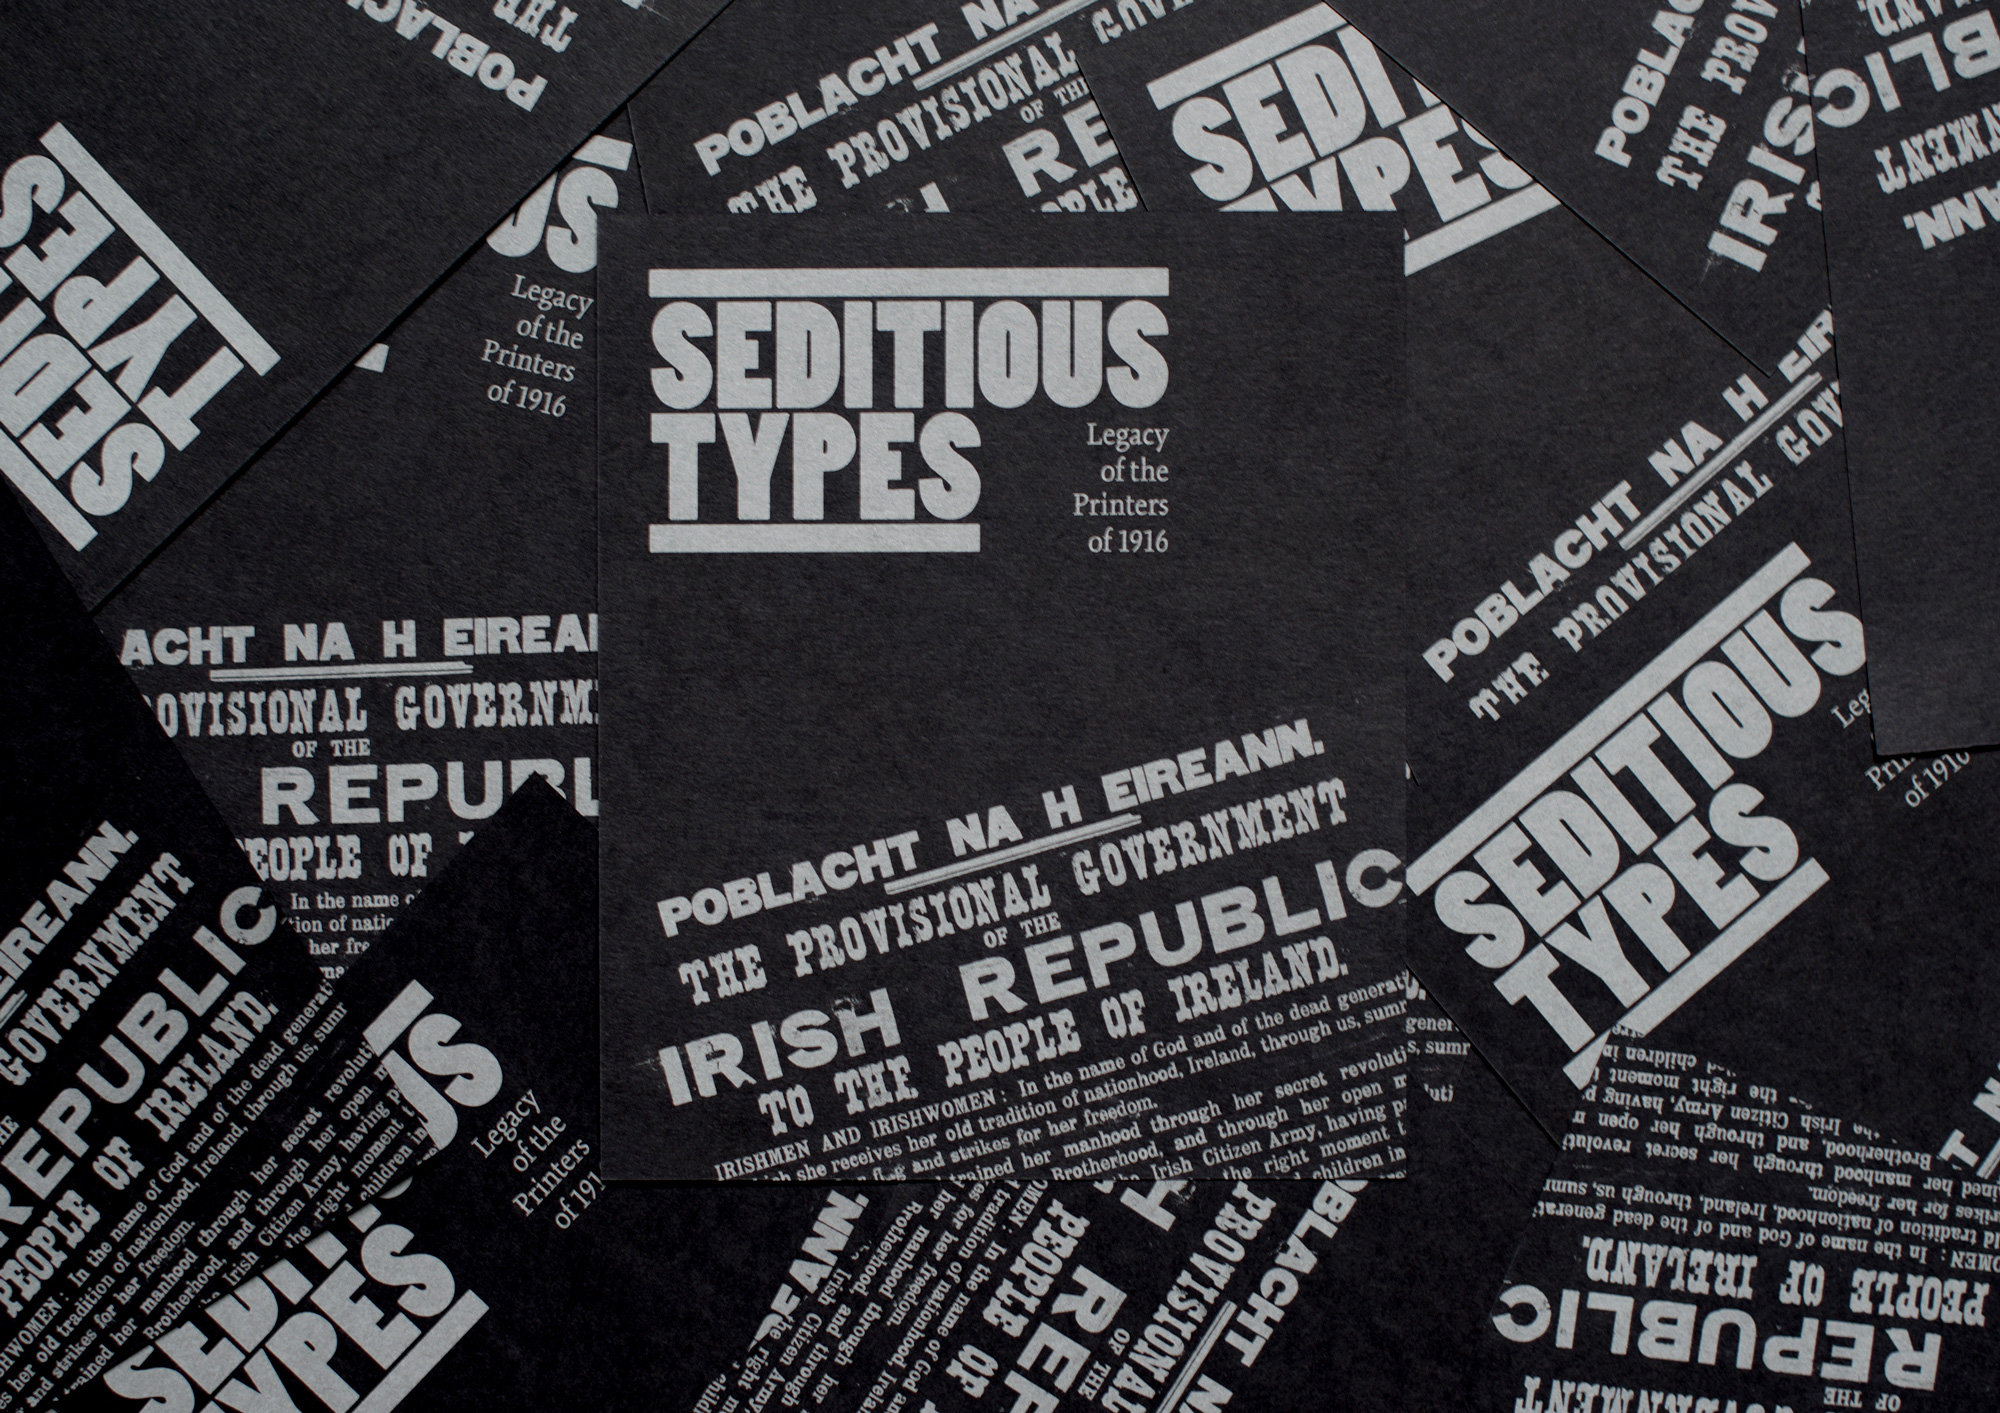 Cover image: Seditious Types